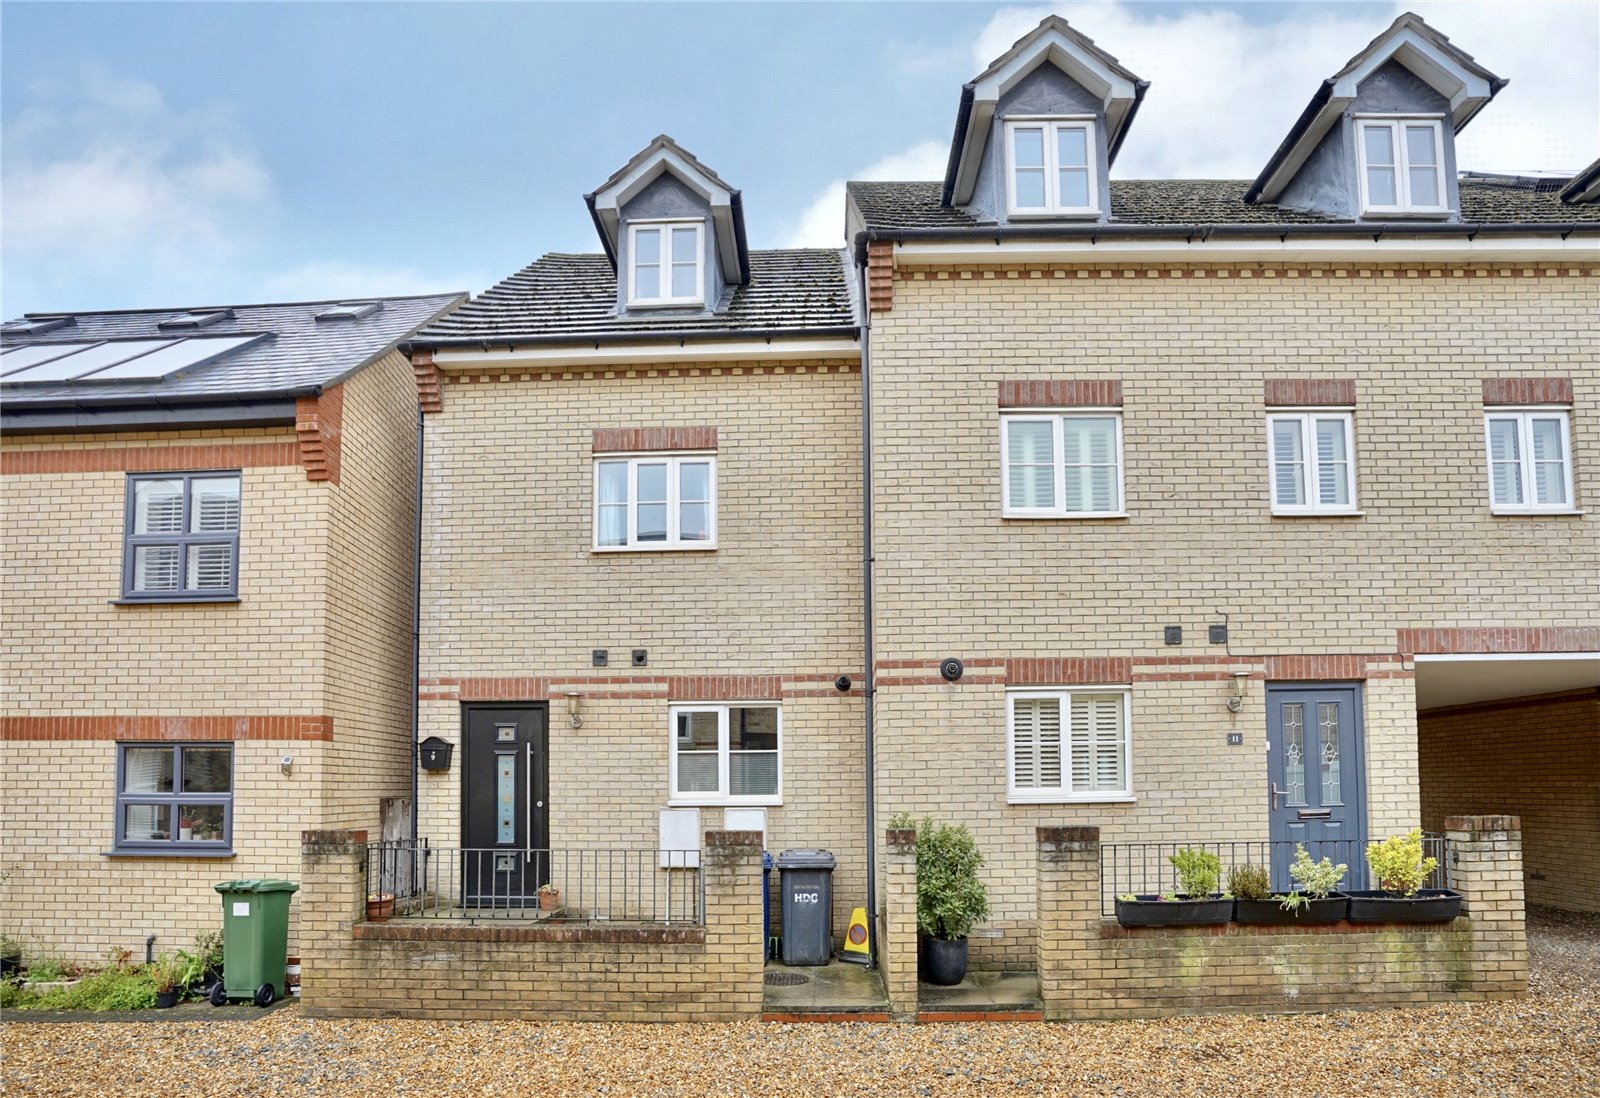 3 bed house for sale in West Street, St. Neots, PE19